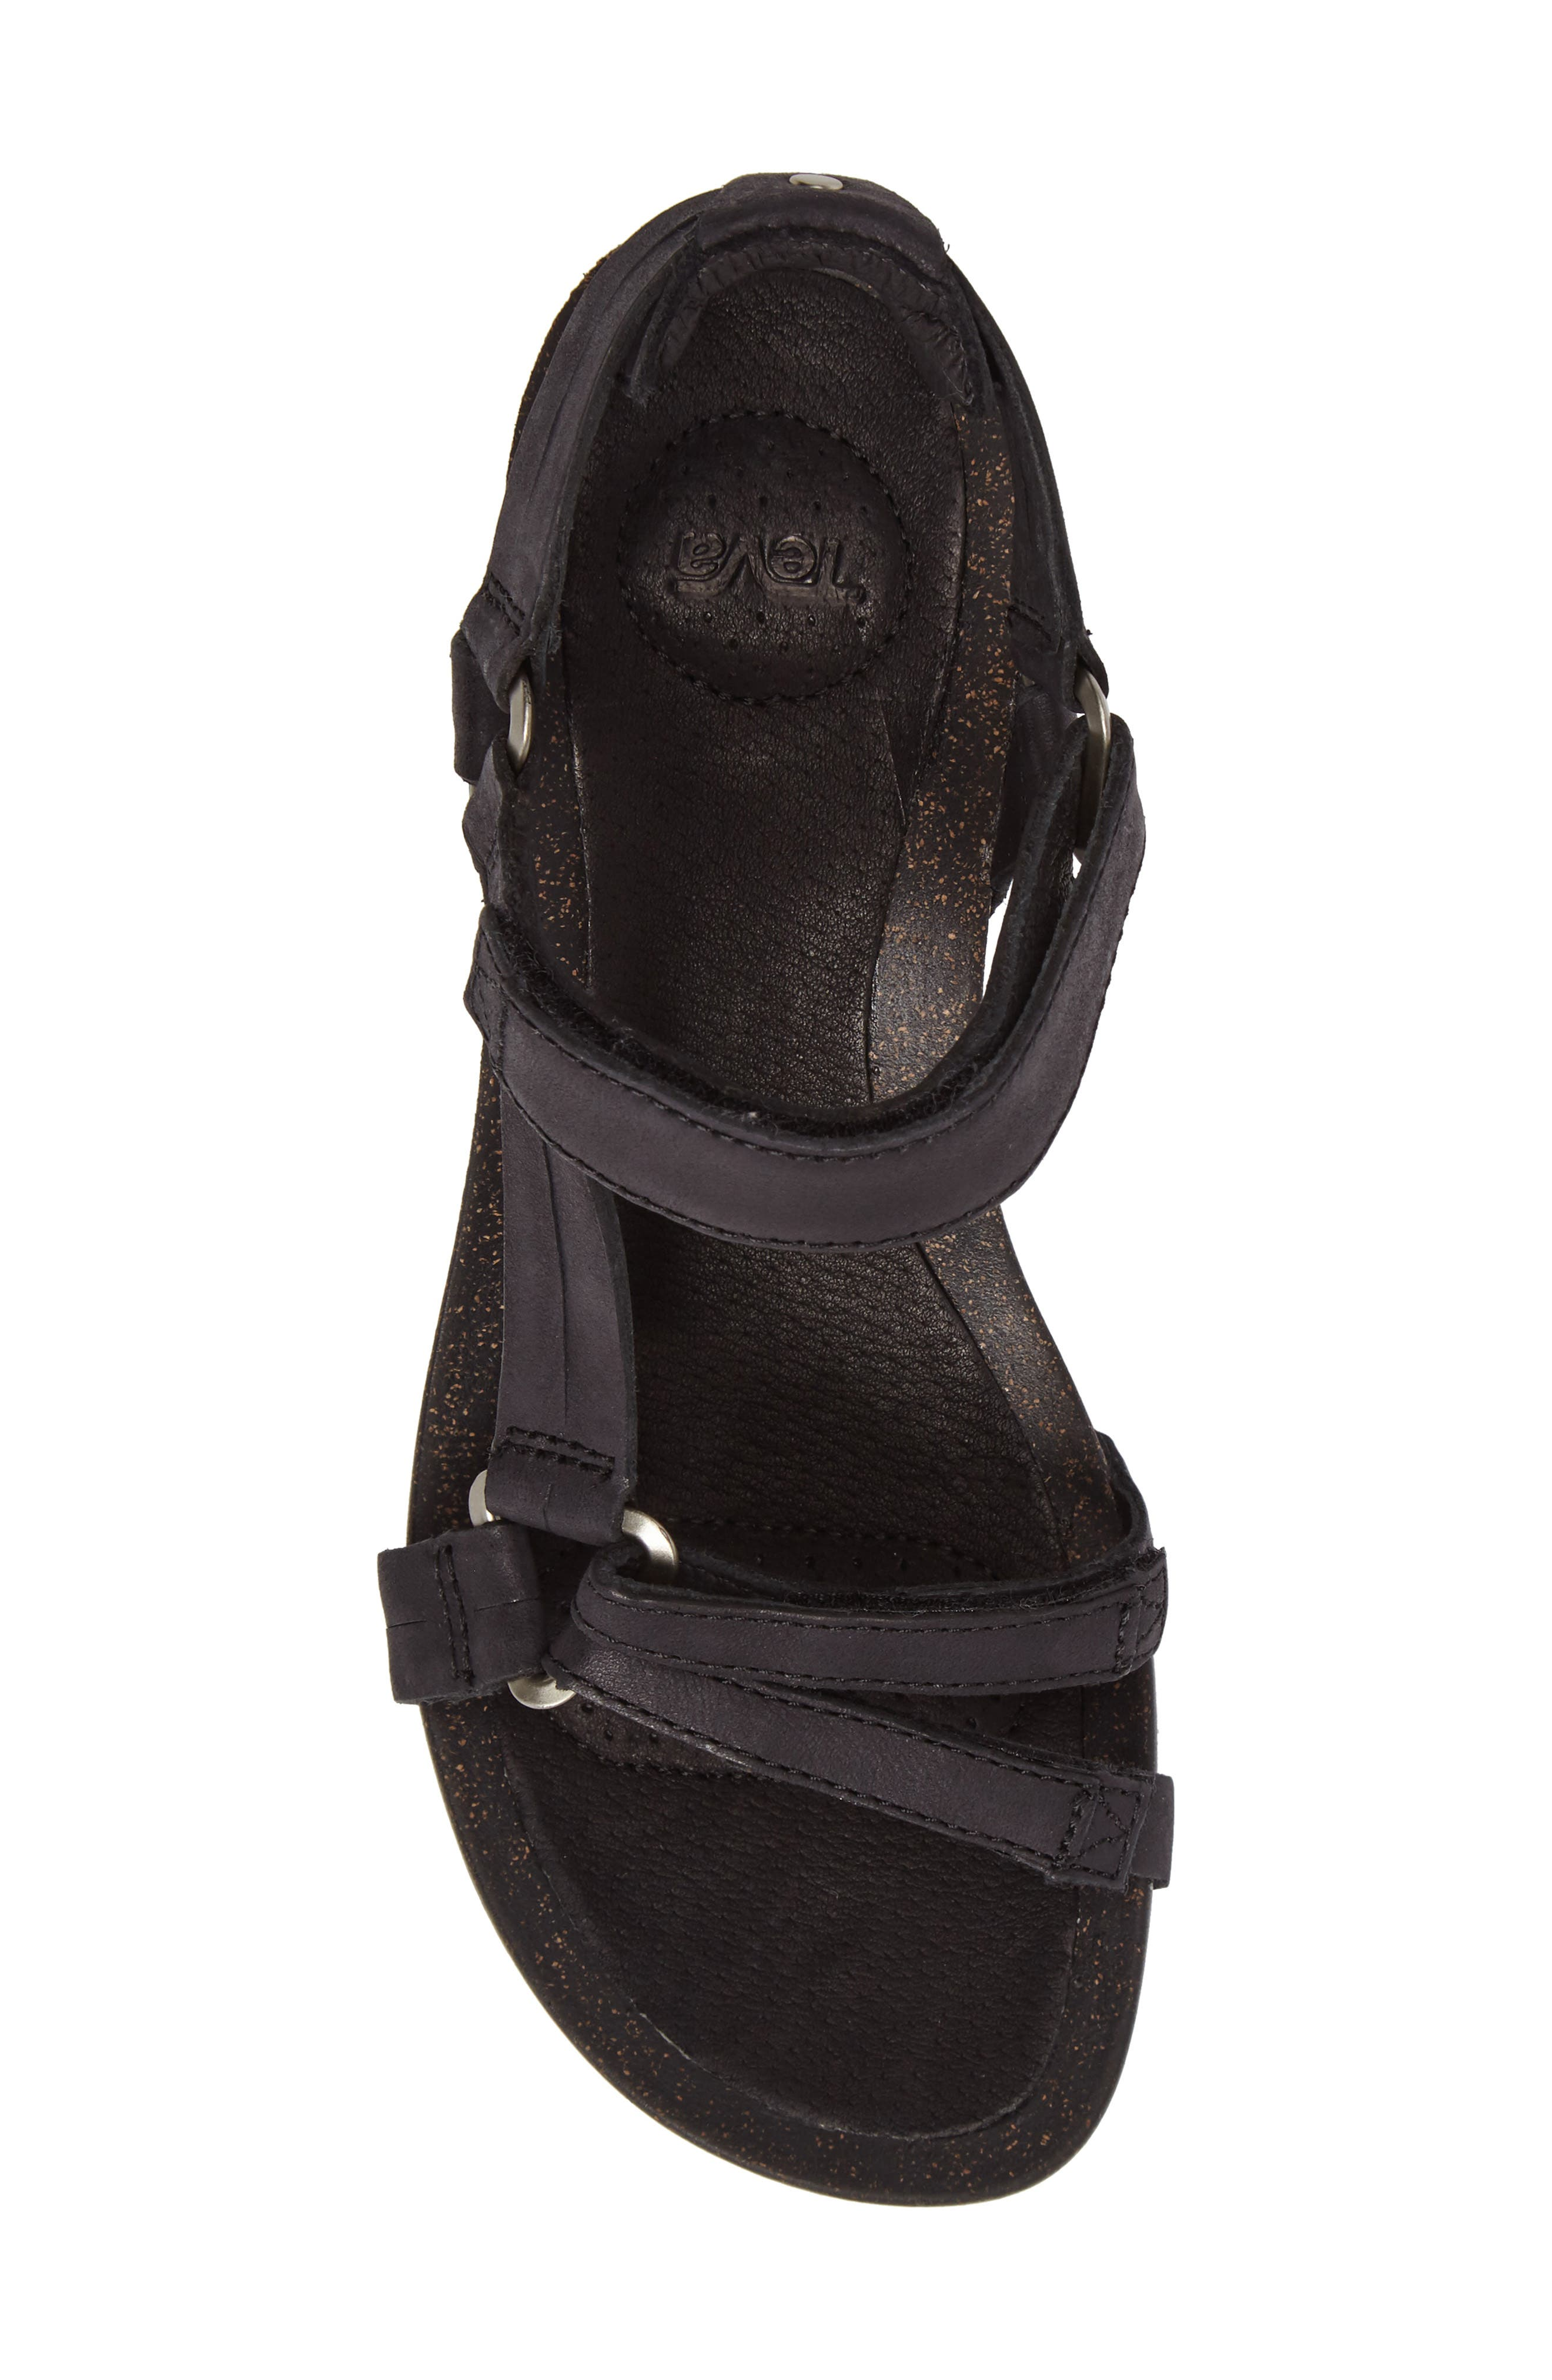 Ysidro Wedge Sandal,                             Alternate thumbnail 5, color,                             002